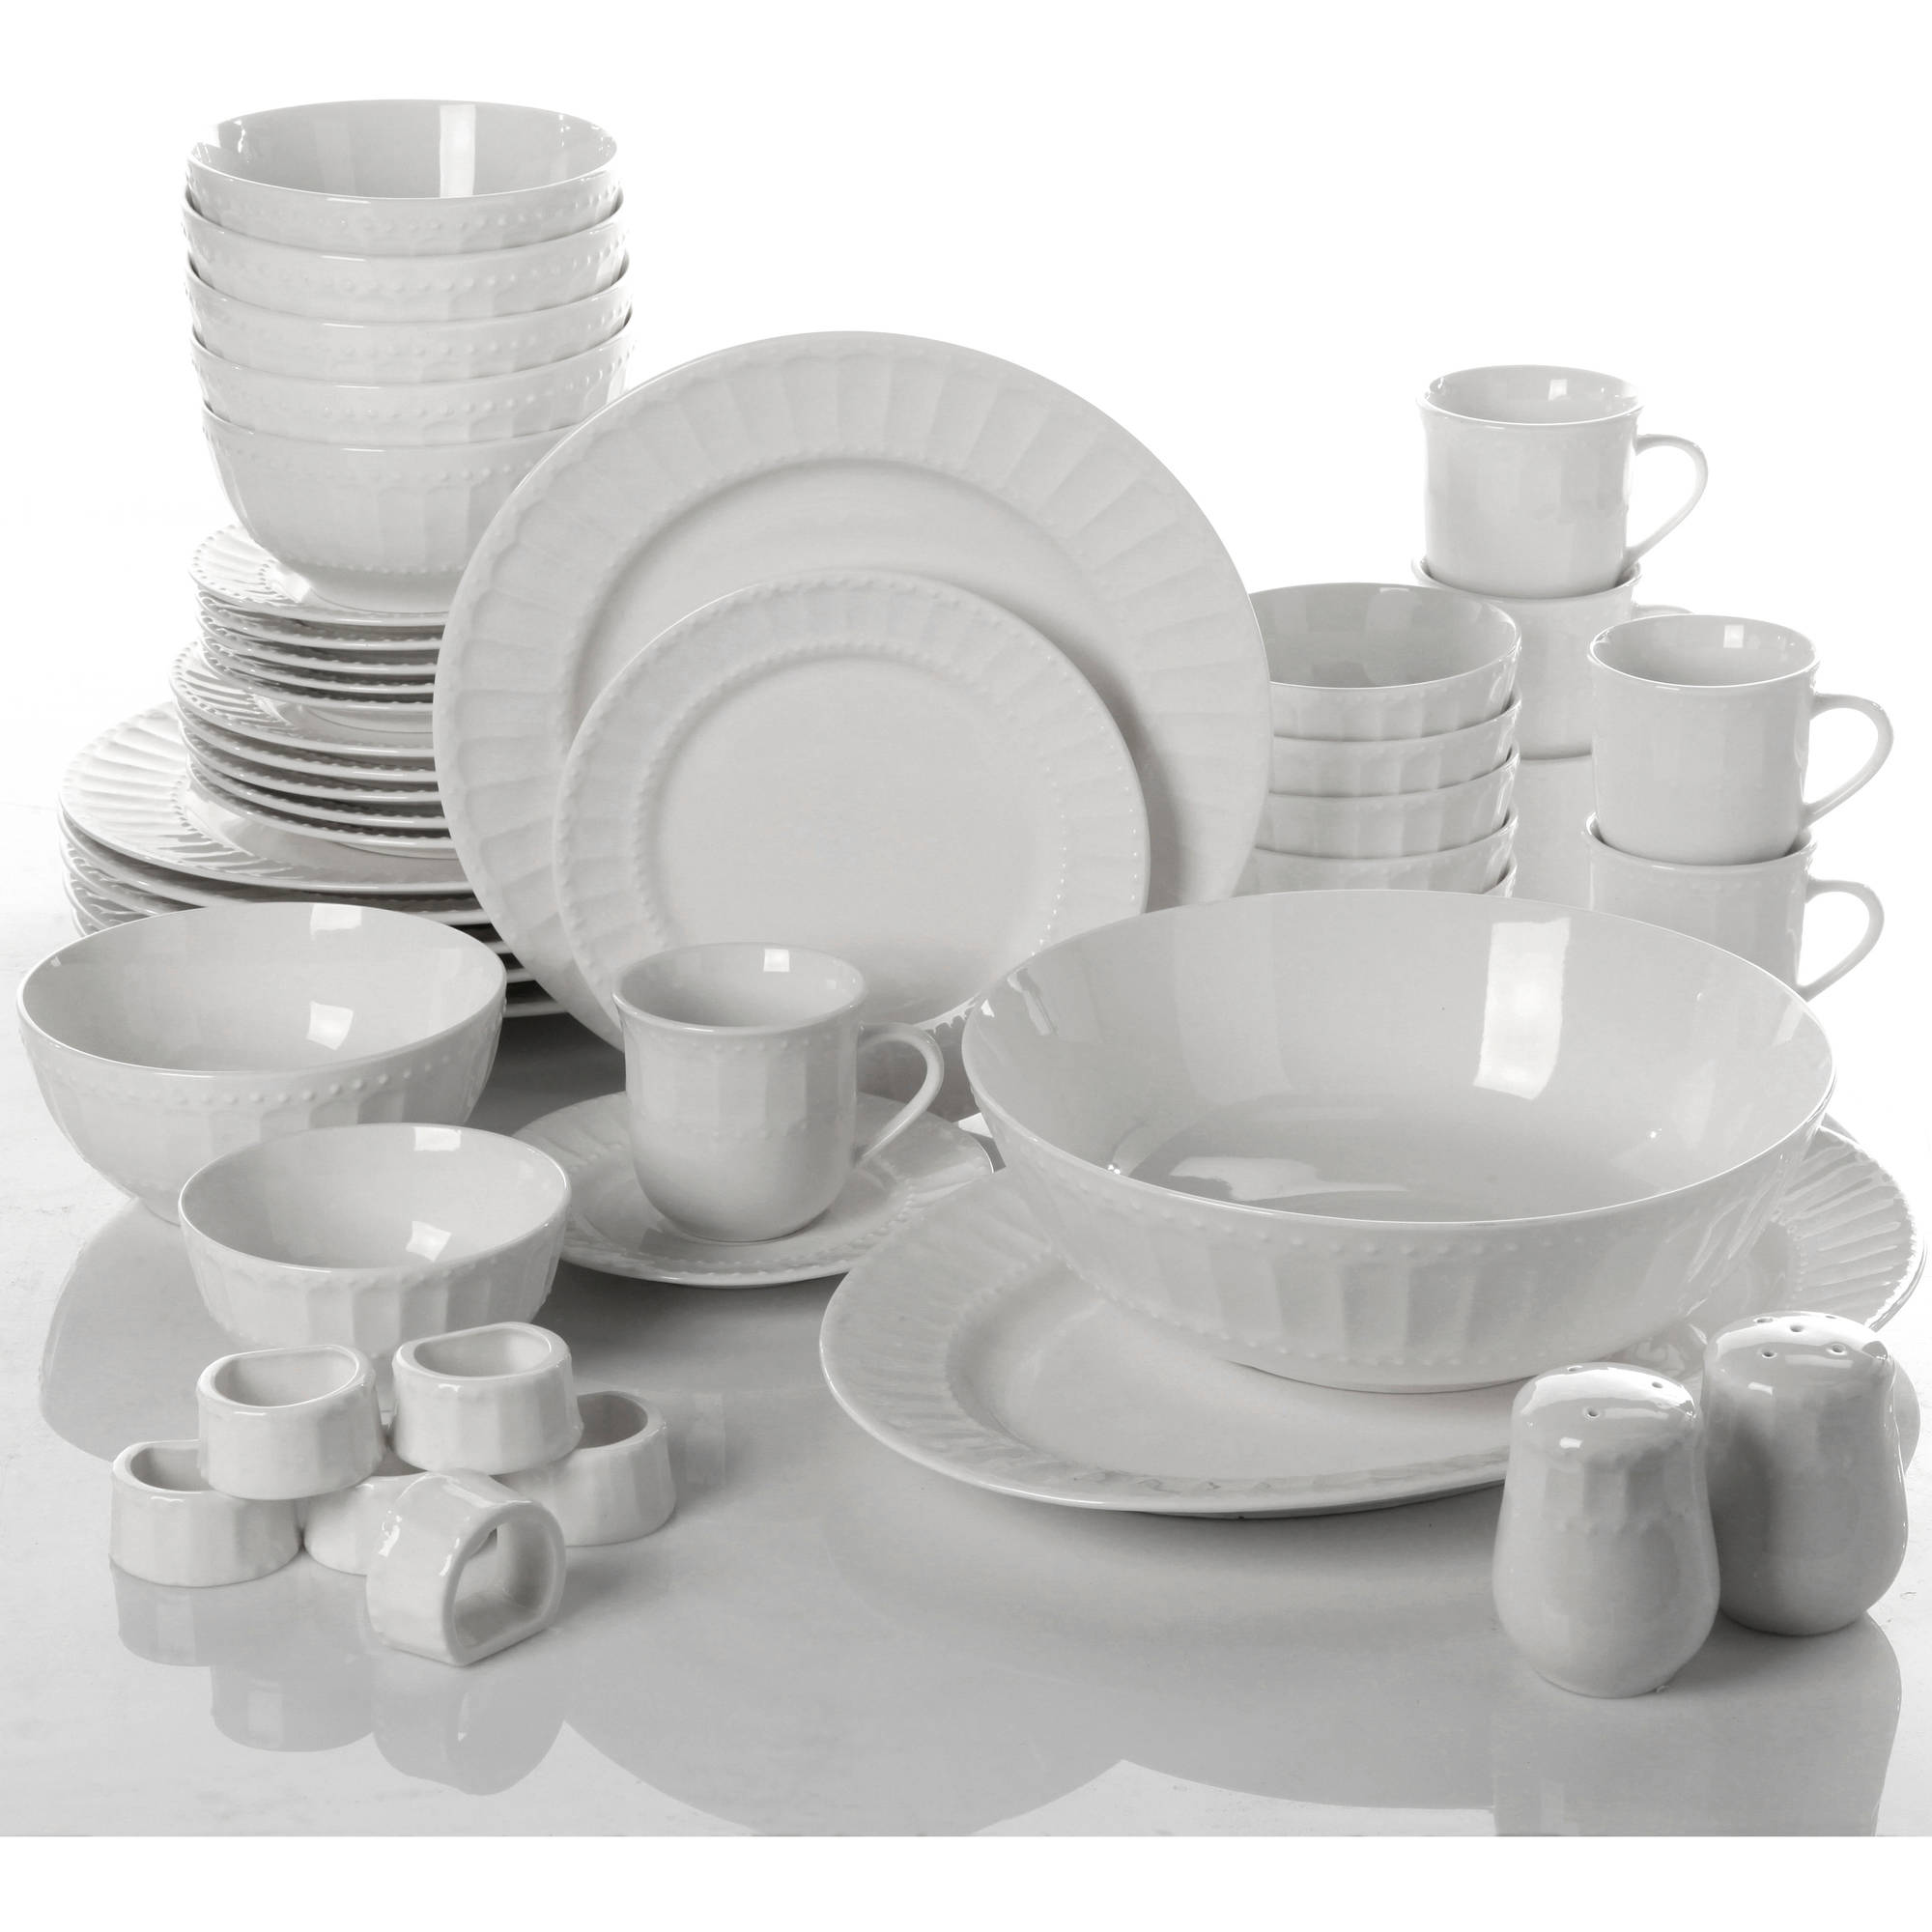 Gibson Home Regalia 46-Piece Dinnerware and Serveware Set Service for 6 - Walmart.com  sc 1 st  Walmart & Gibson Home Regalia 46-Piece Dinnerware and Serveware Set Service ...